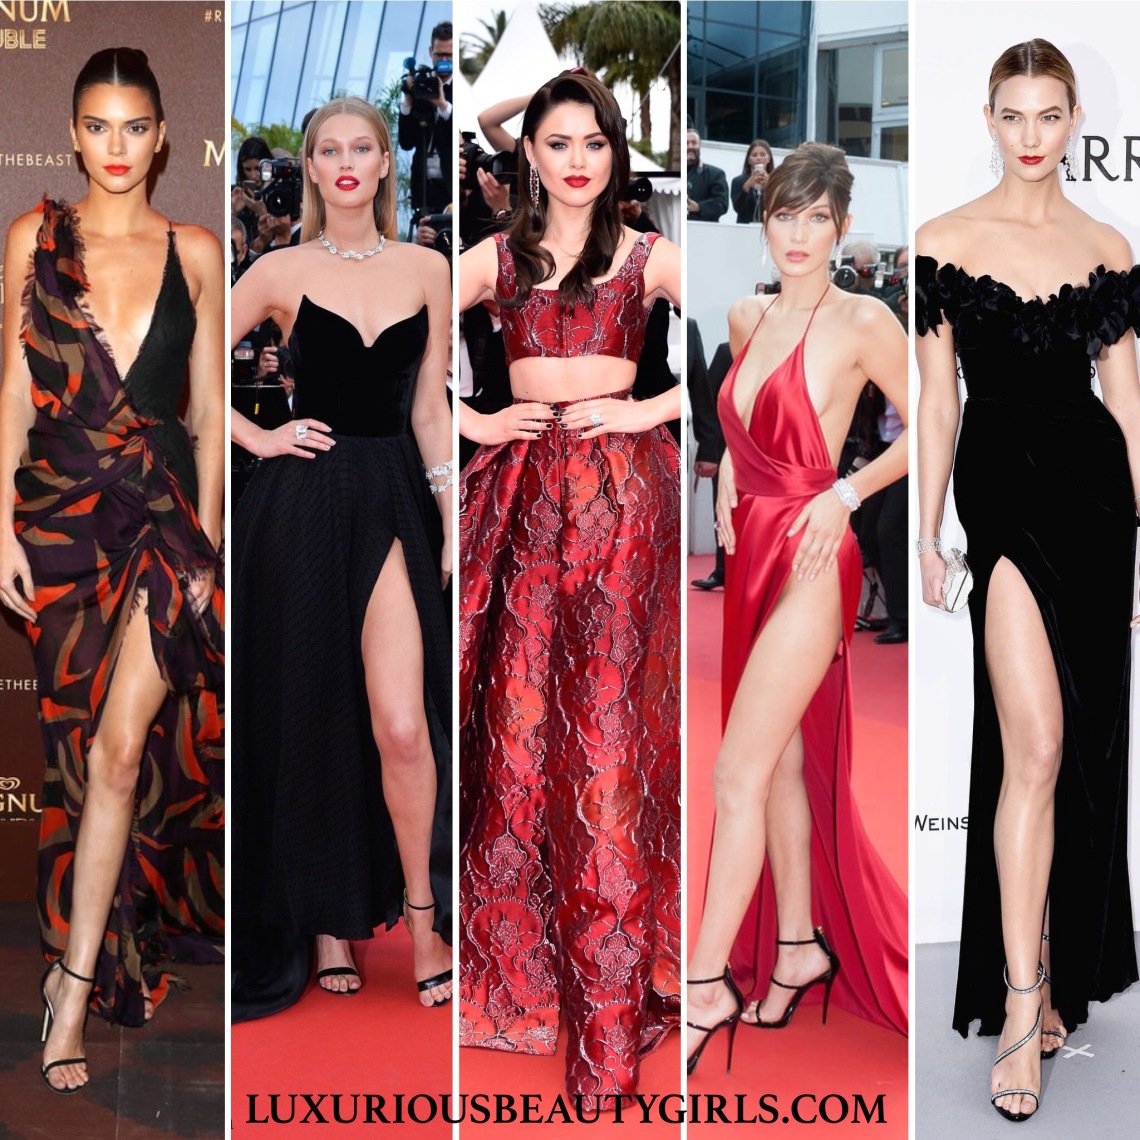 Festival de Cannes 2016 luxuriousbeautygirls.com